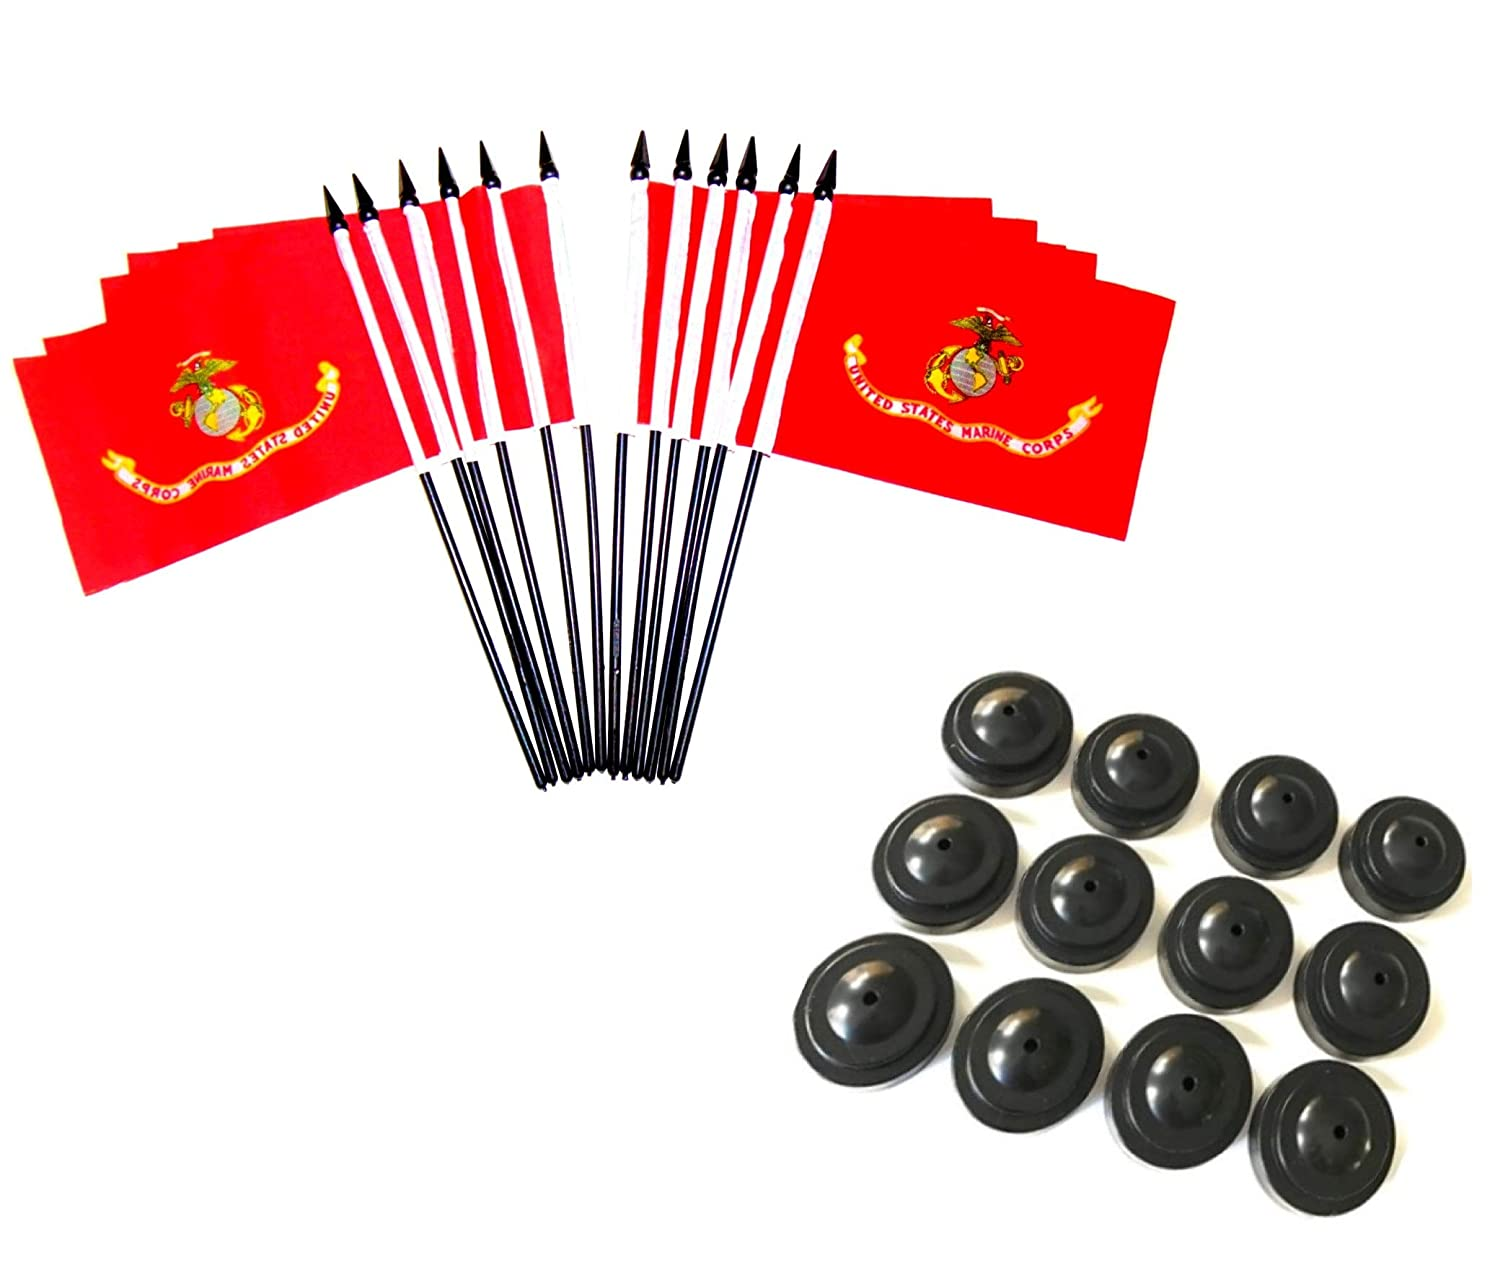 """Box of 12 United States Military Service Miniature Desk & Table Flags Includes 12 Flag Stands & 12 Polyester Small Mini Military Stick Flags (4""""x6"""" Marine Corps - 12 Polyester Flags and Bases)"""